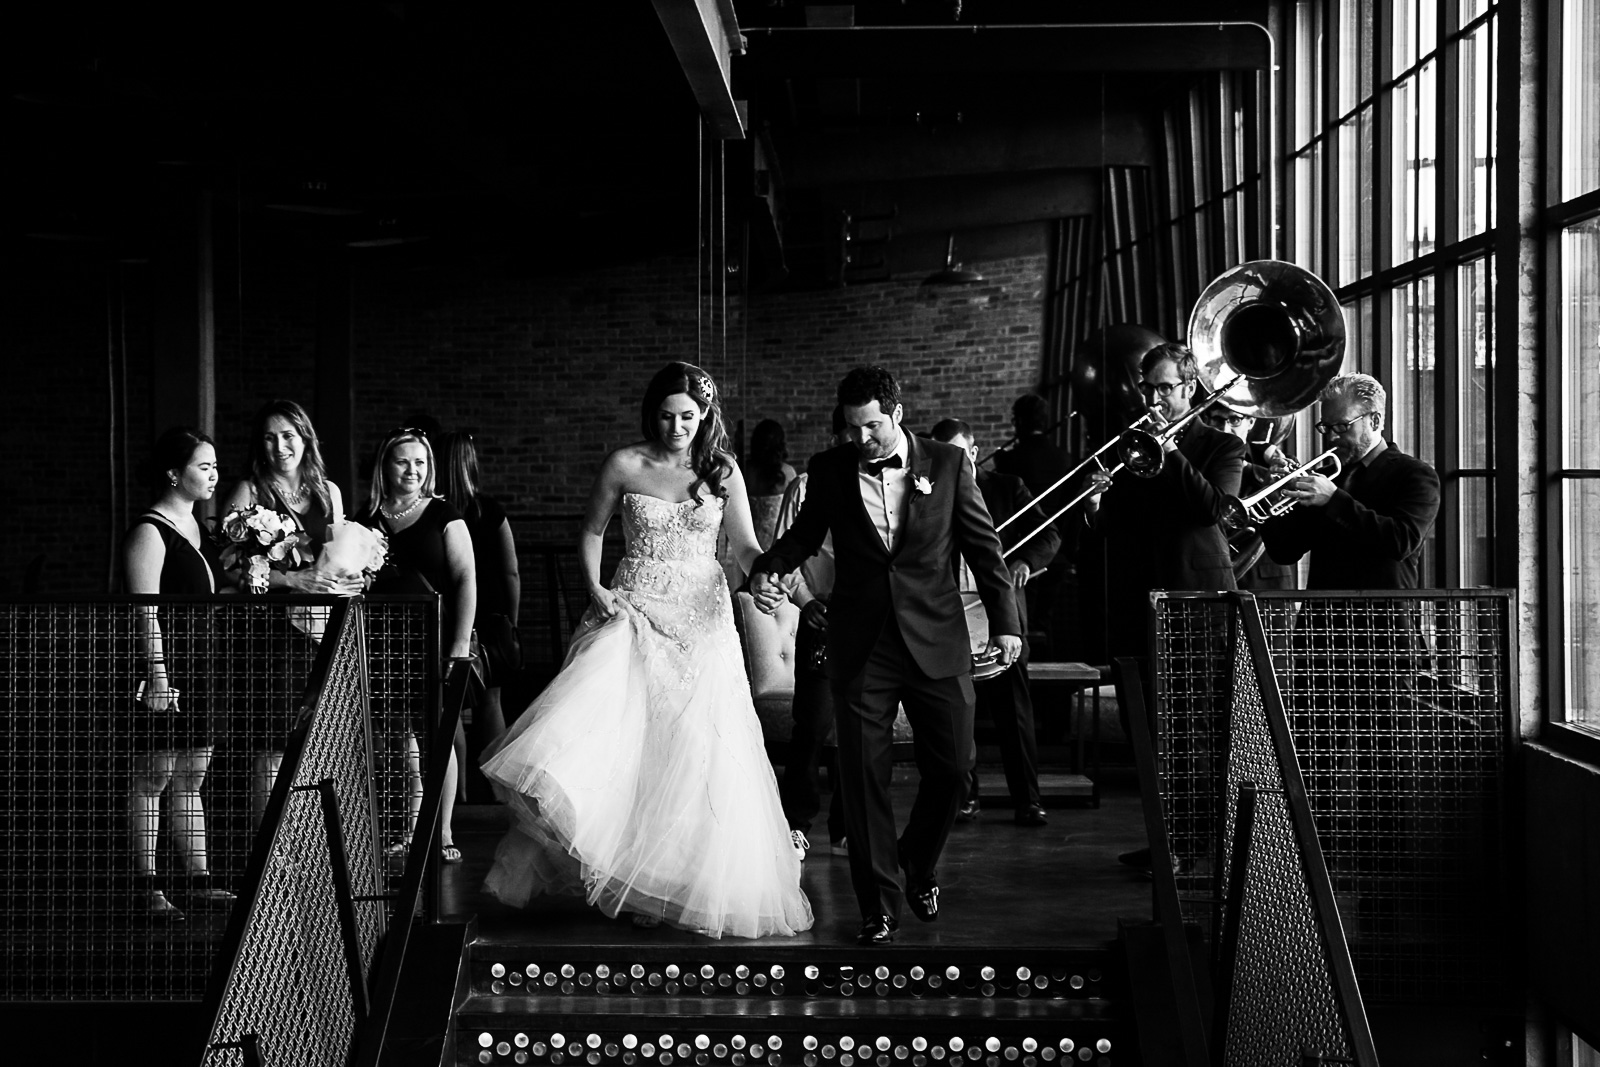 A band plays as the bride and groom festively enter cocktail hour at their wedding in Chicago's West Loop.